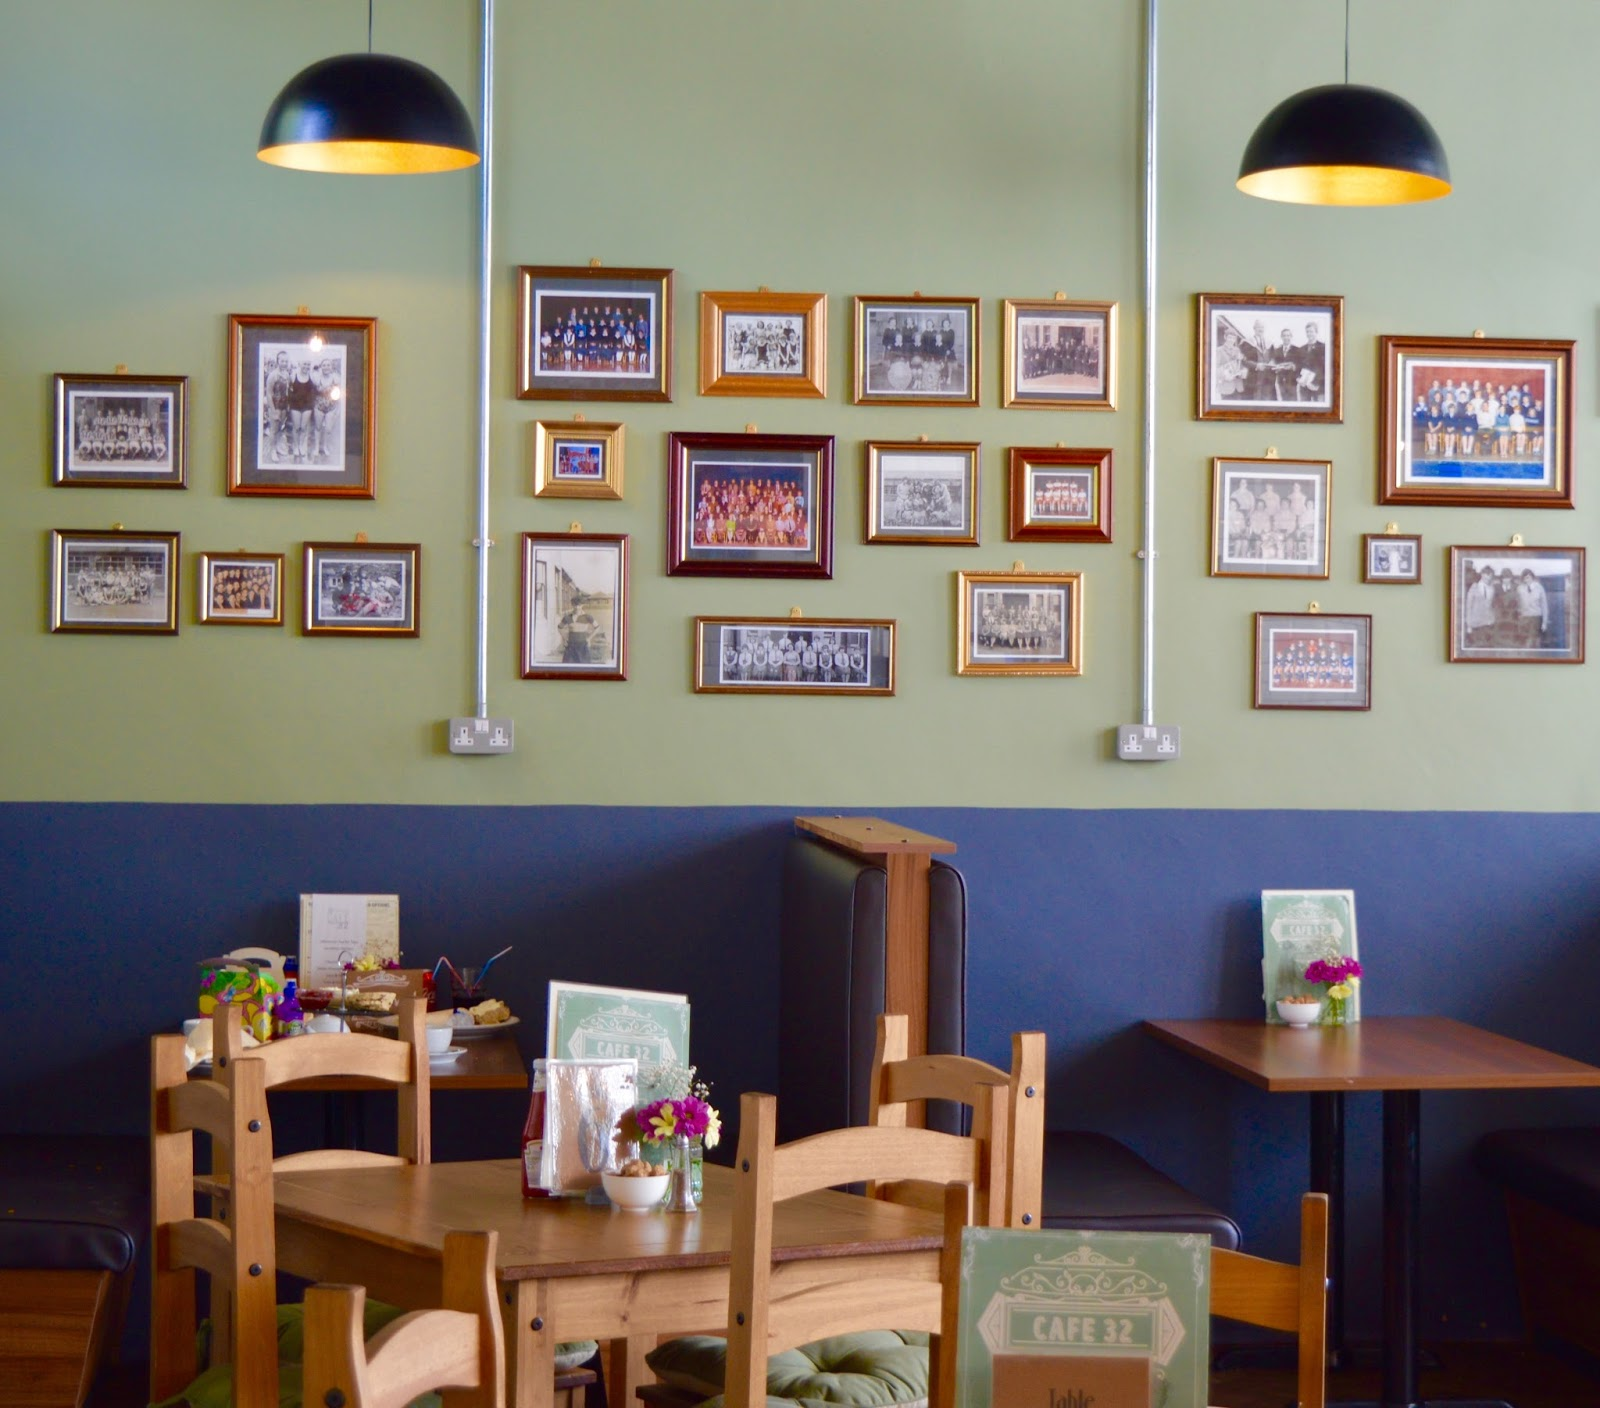 Cafe 32 | Linskill Centre, North Shields - A review - interior